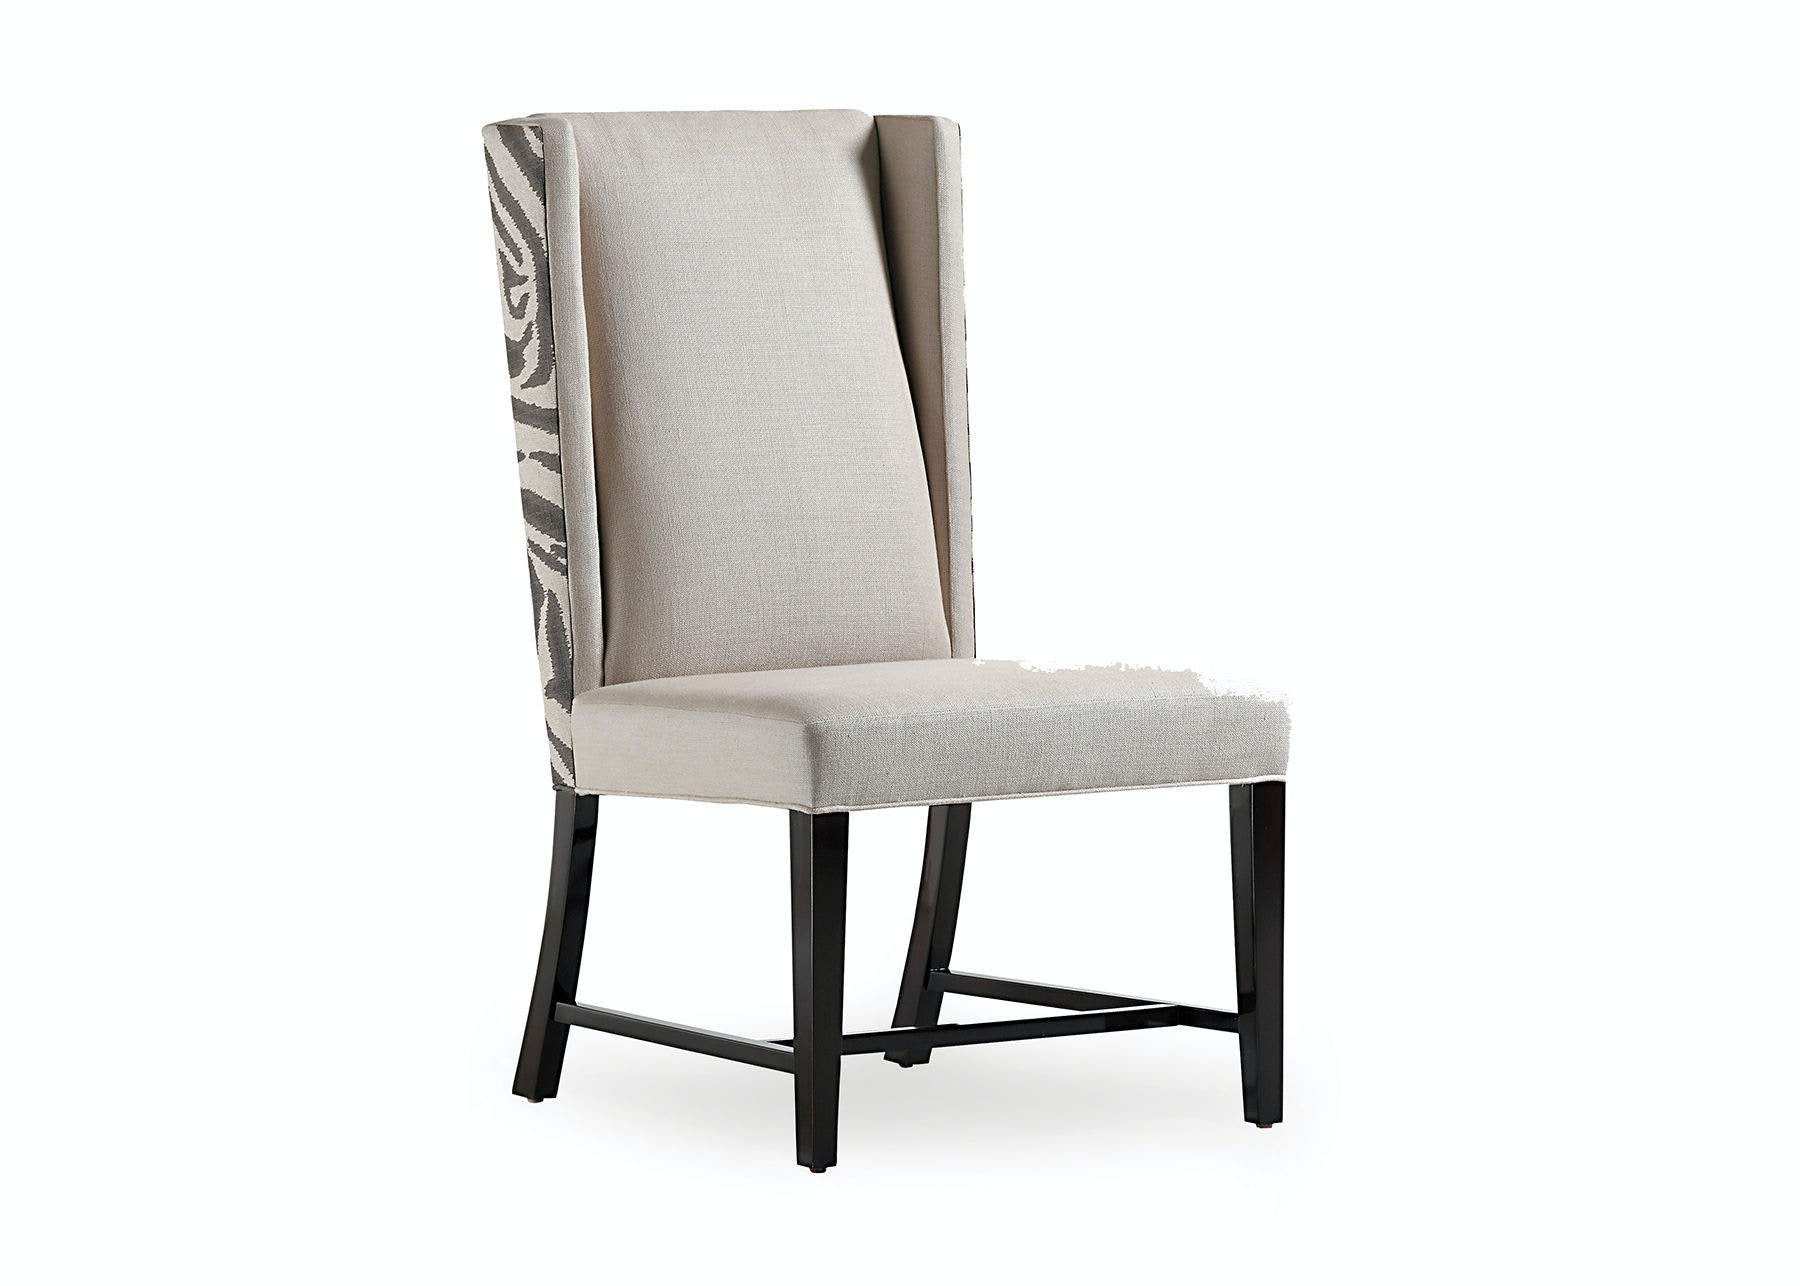 Jessica Charles Dining Room Frazier Armless Dining Chair 1915 : Hickory Furniture Mart : Hickory, NC